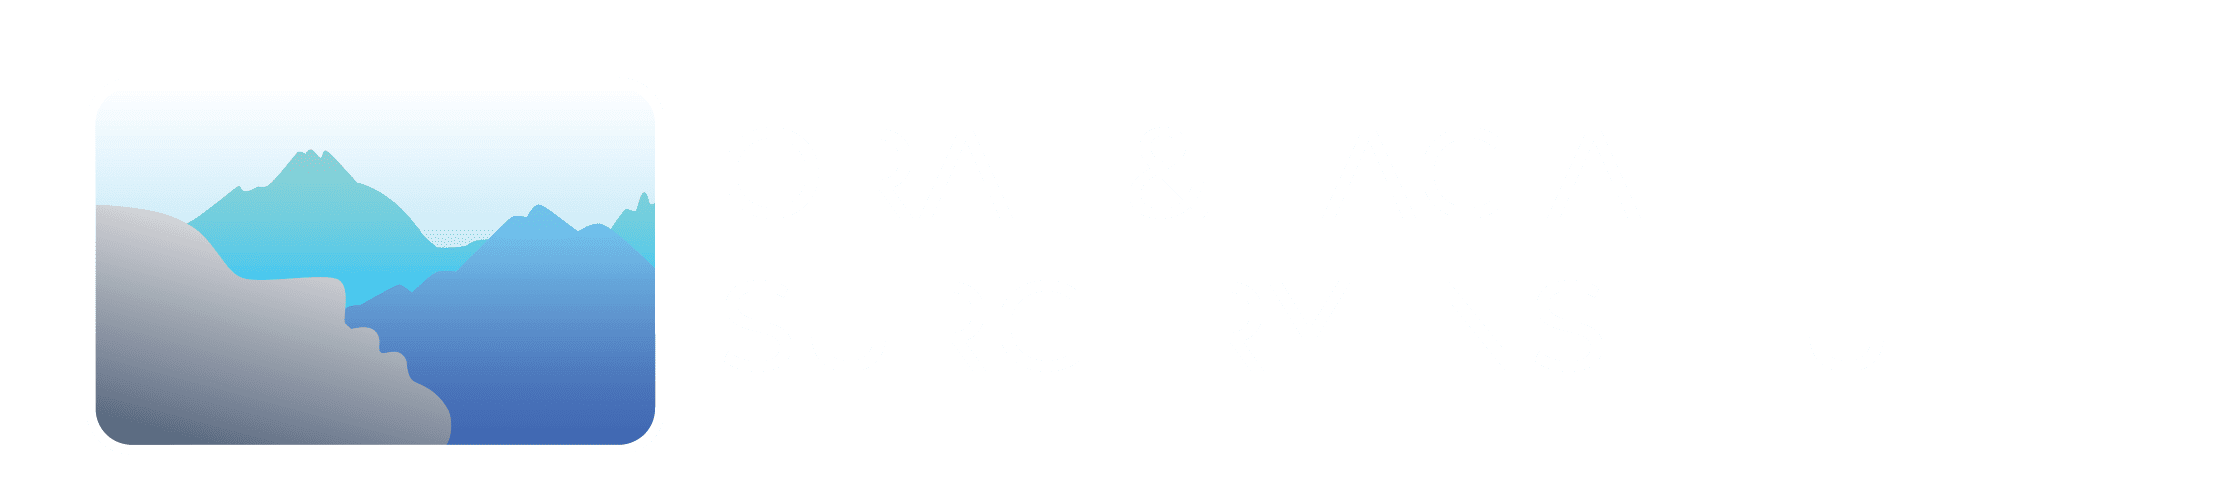 Oral and Facial Surgery Institute Logo